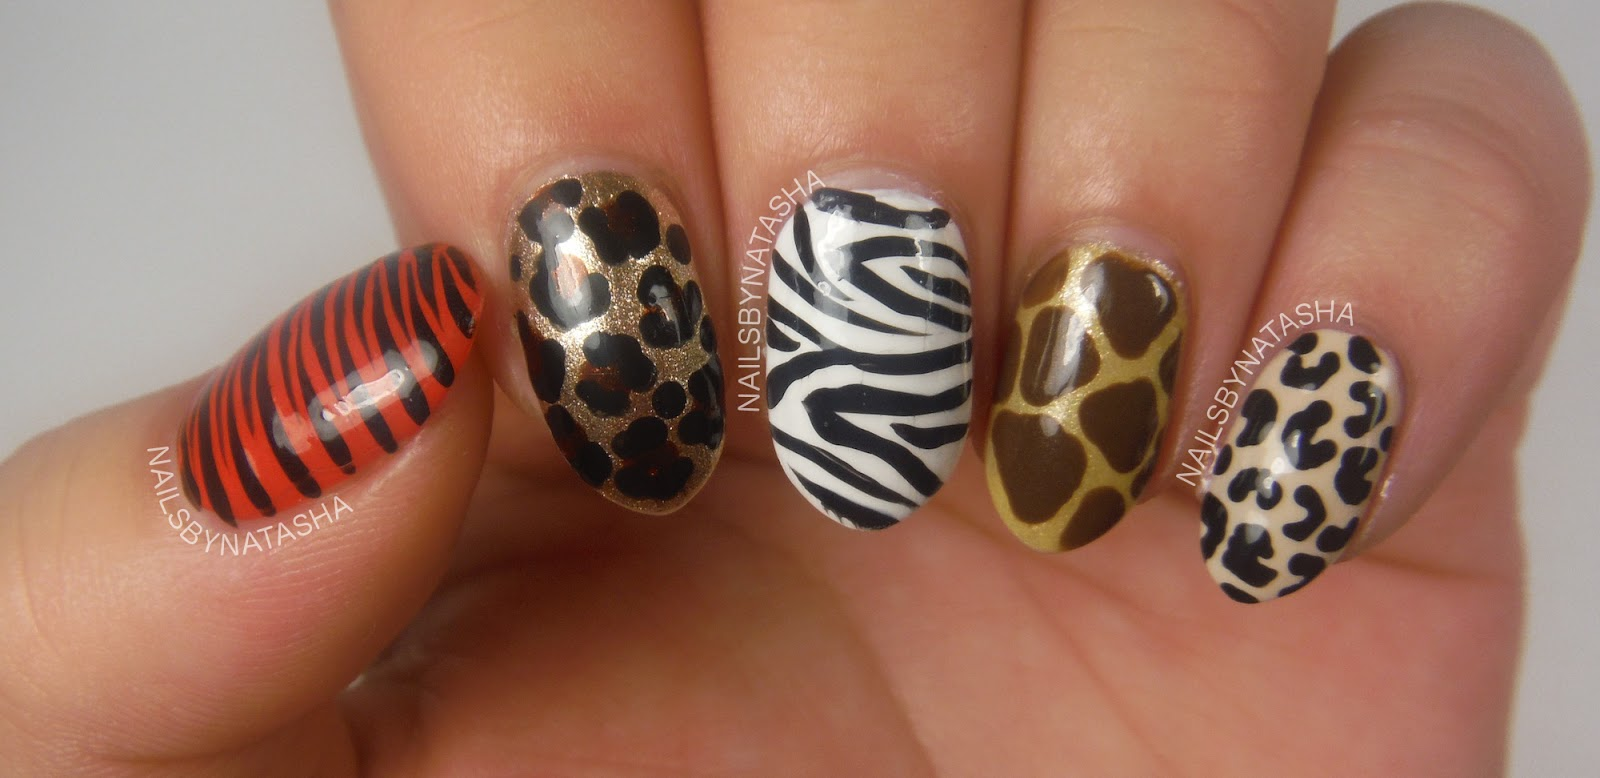 Nails by natasha nail art august day 6 animal print i really want to do a crocodilealligator print someday i tried it on a practice finger but it didnt turn out at all a green print would look really cool prinsesfo Gallery